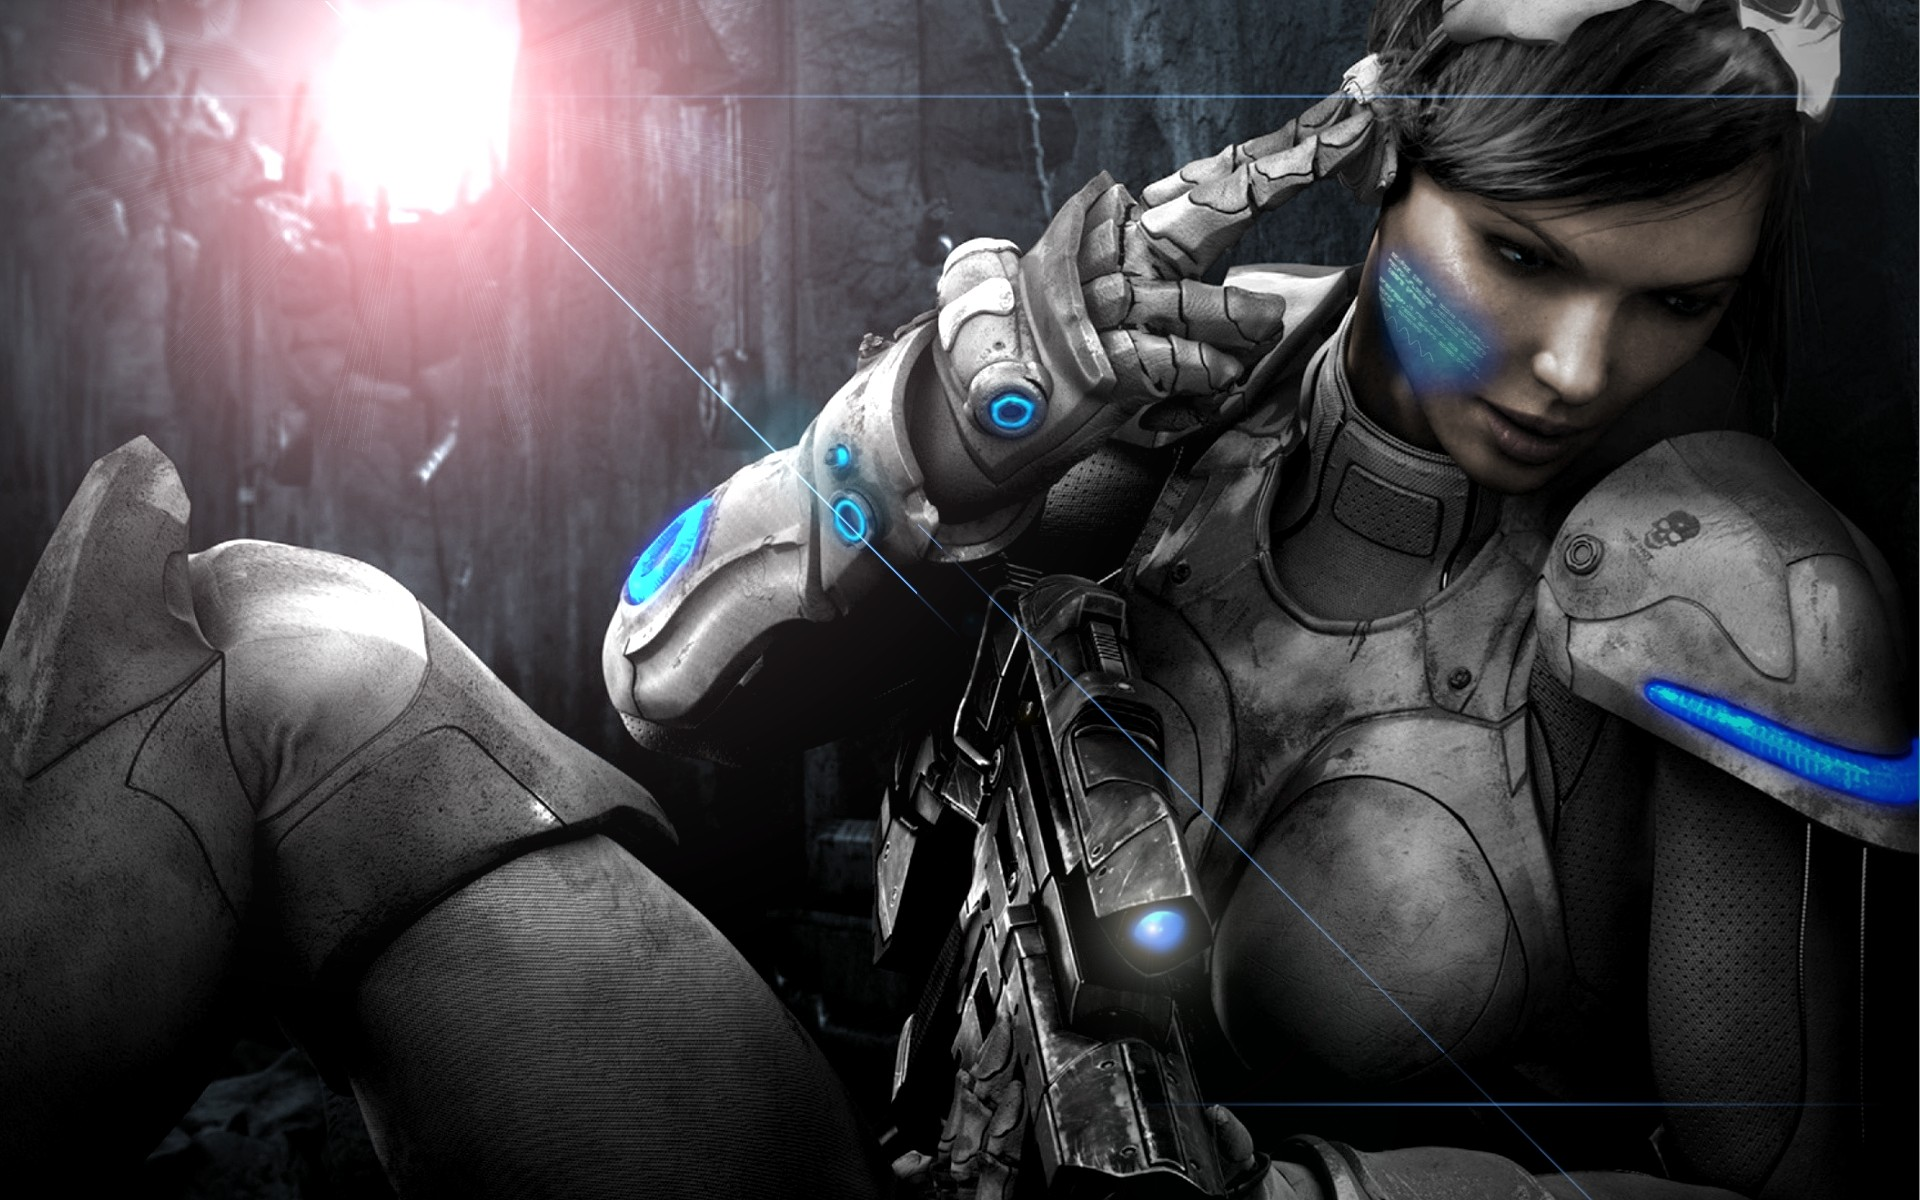 Starcraft II HD Wallpapers and Background Images   stmednet 1920x1200